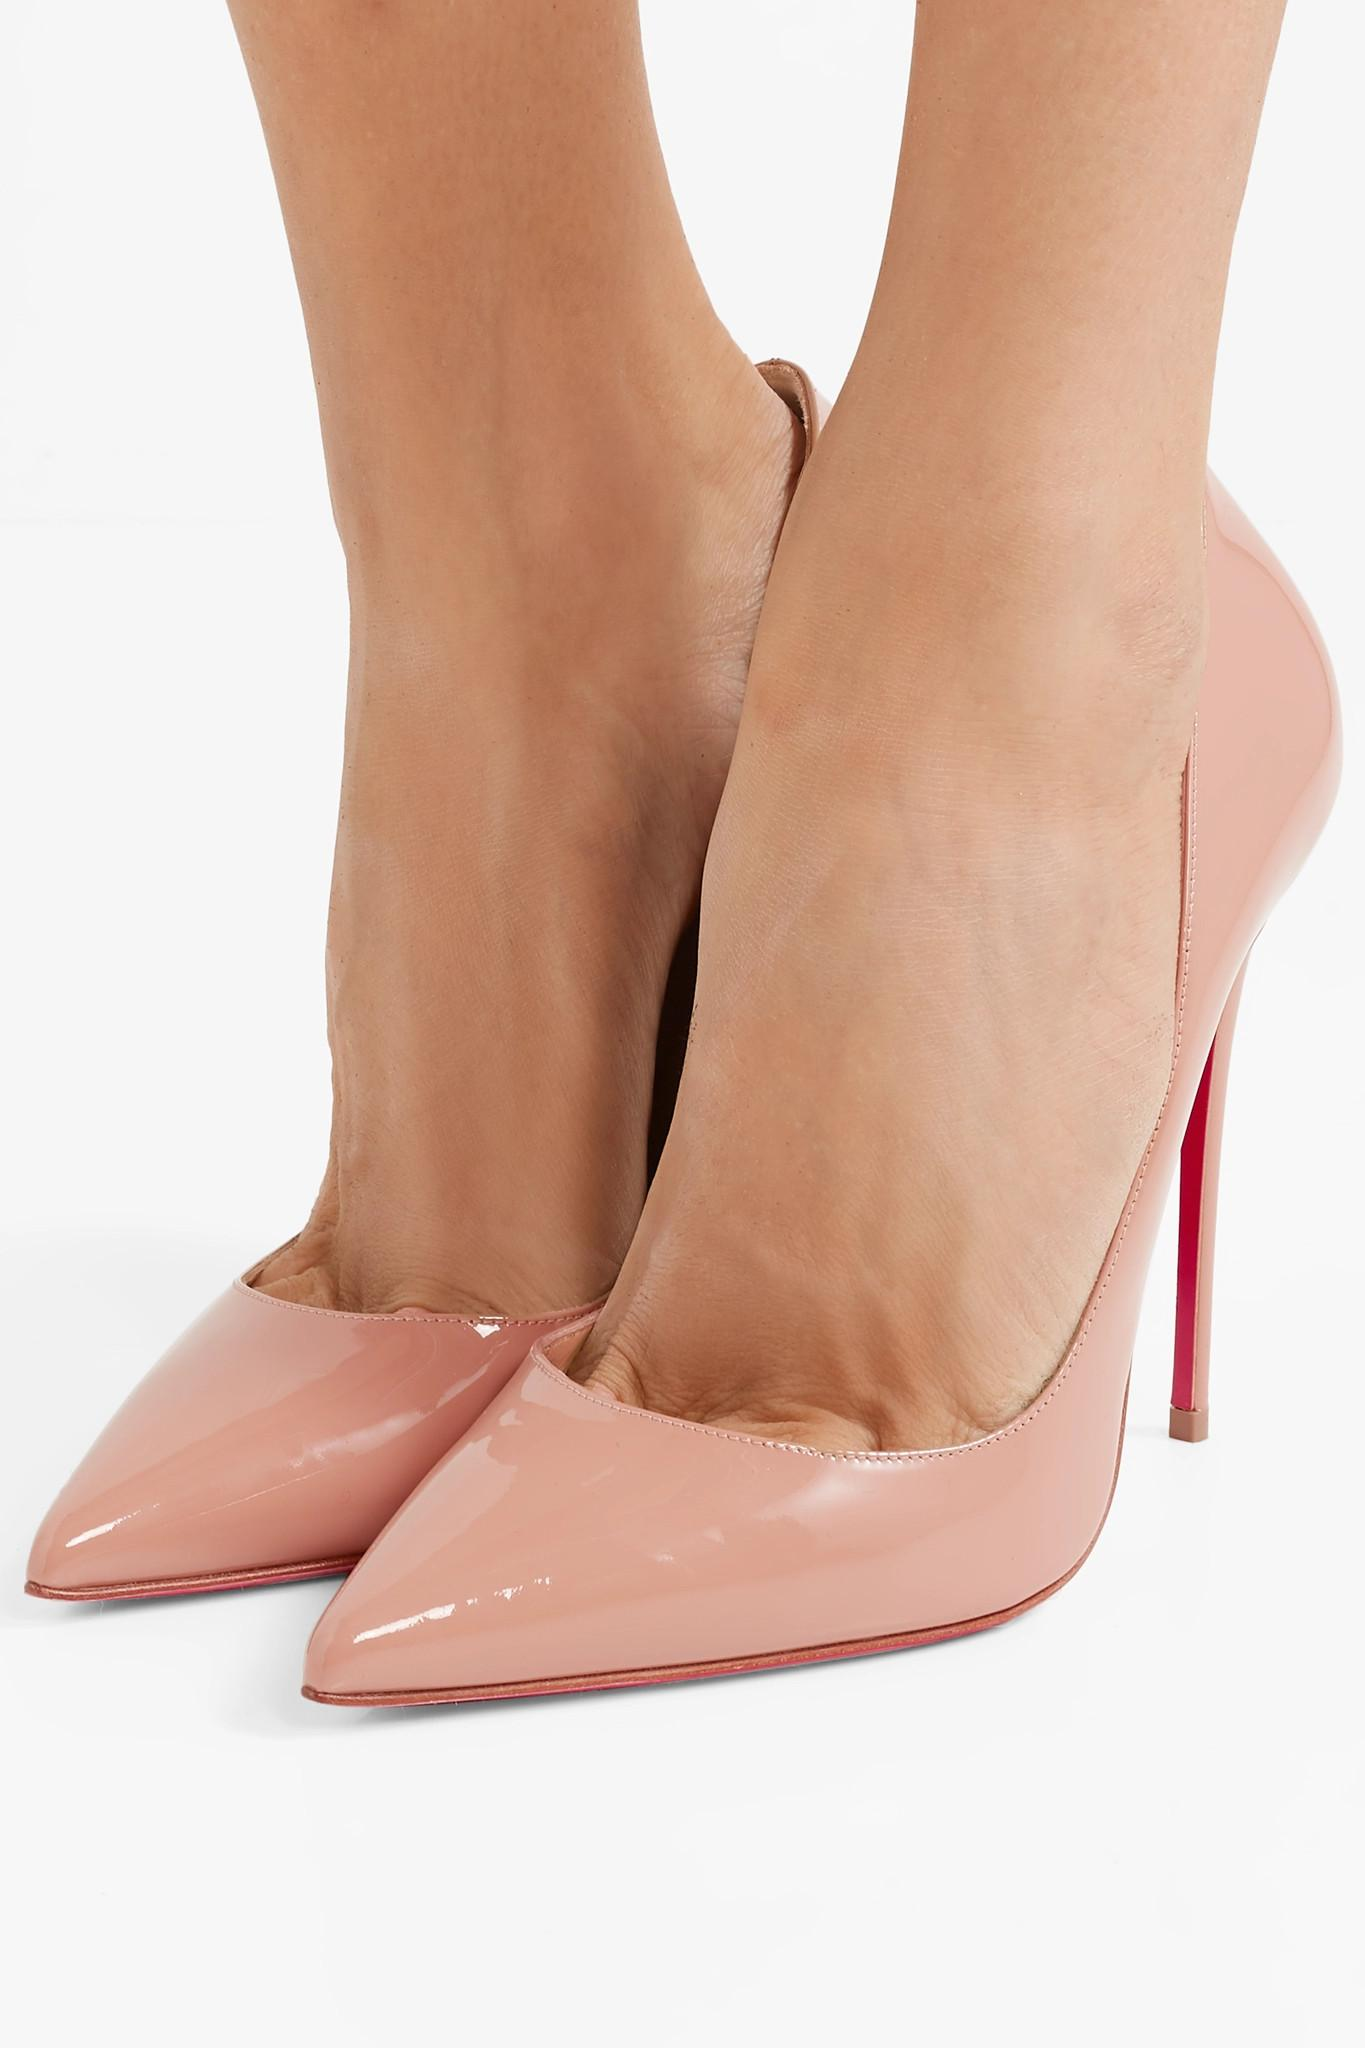 dcfc29c2fc3 Christian Louboutin - Natural So Kate 120 Patent-leather Pumps - Lyst. View  fullscreen